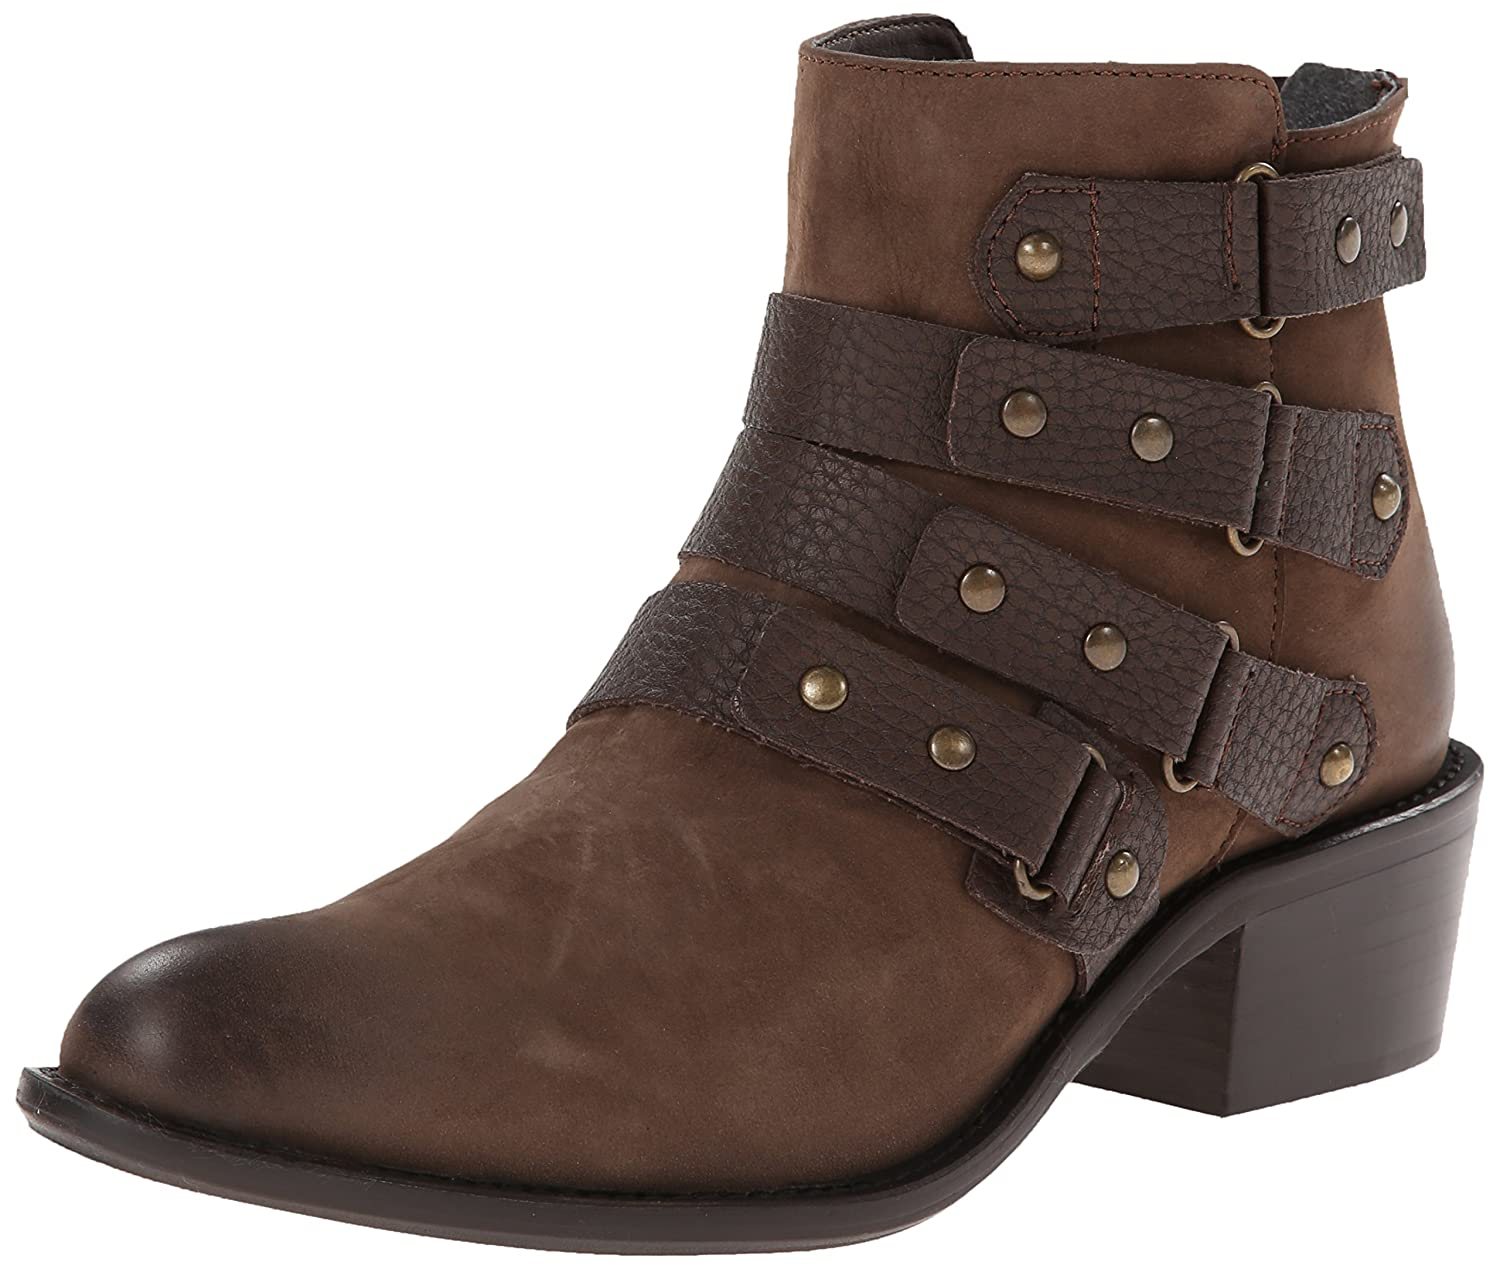 DV by Dolce Vita Women's Vista Boot